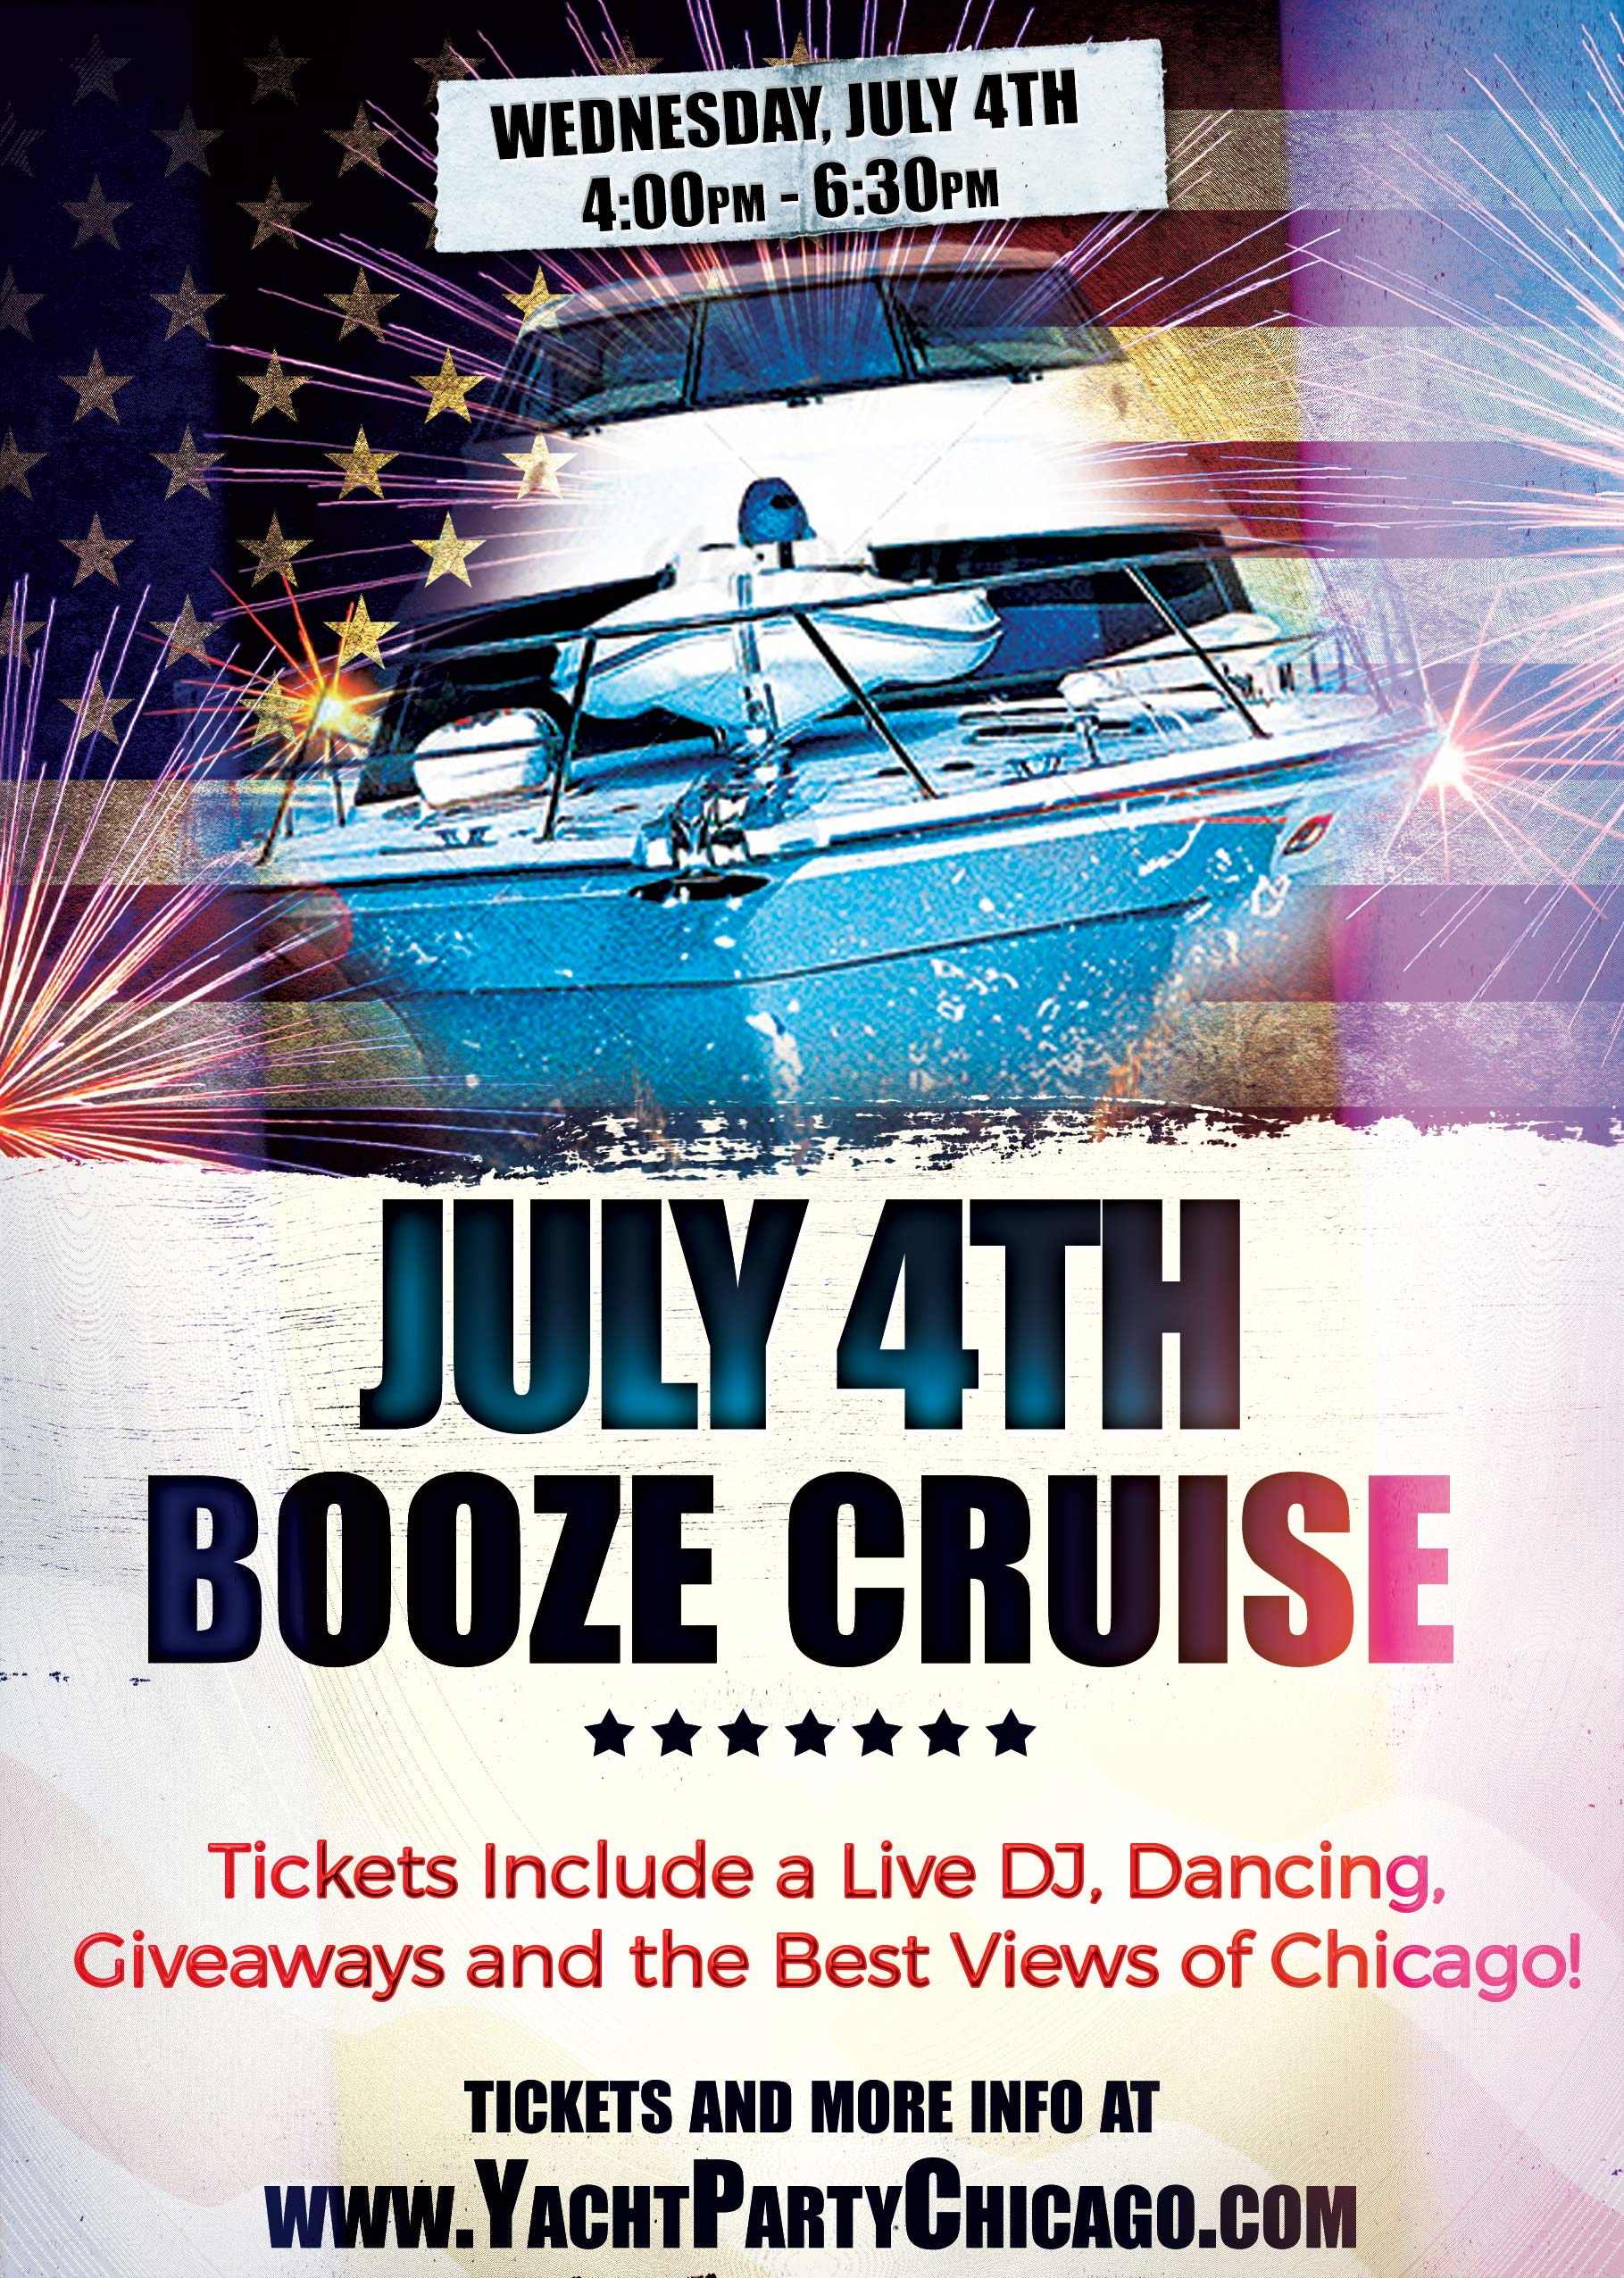 July 4th Independence Day Party Booze Cruise - Tickets include a Live DJ, Dancing, Giveaways, and the best views of Chicago!